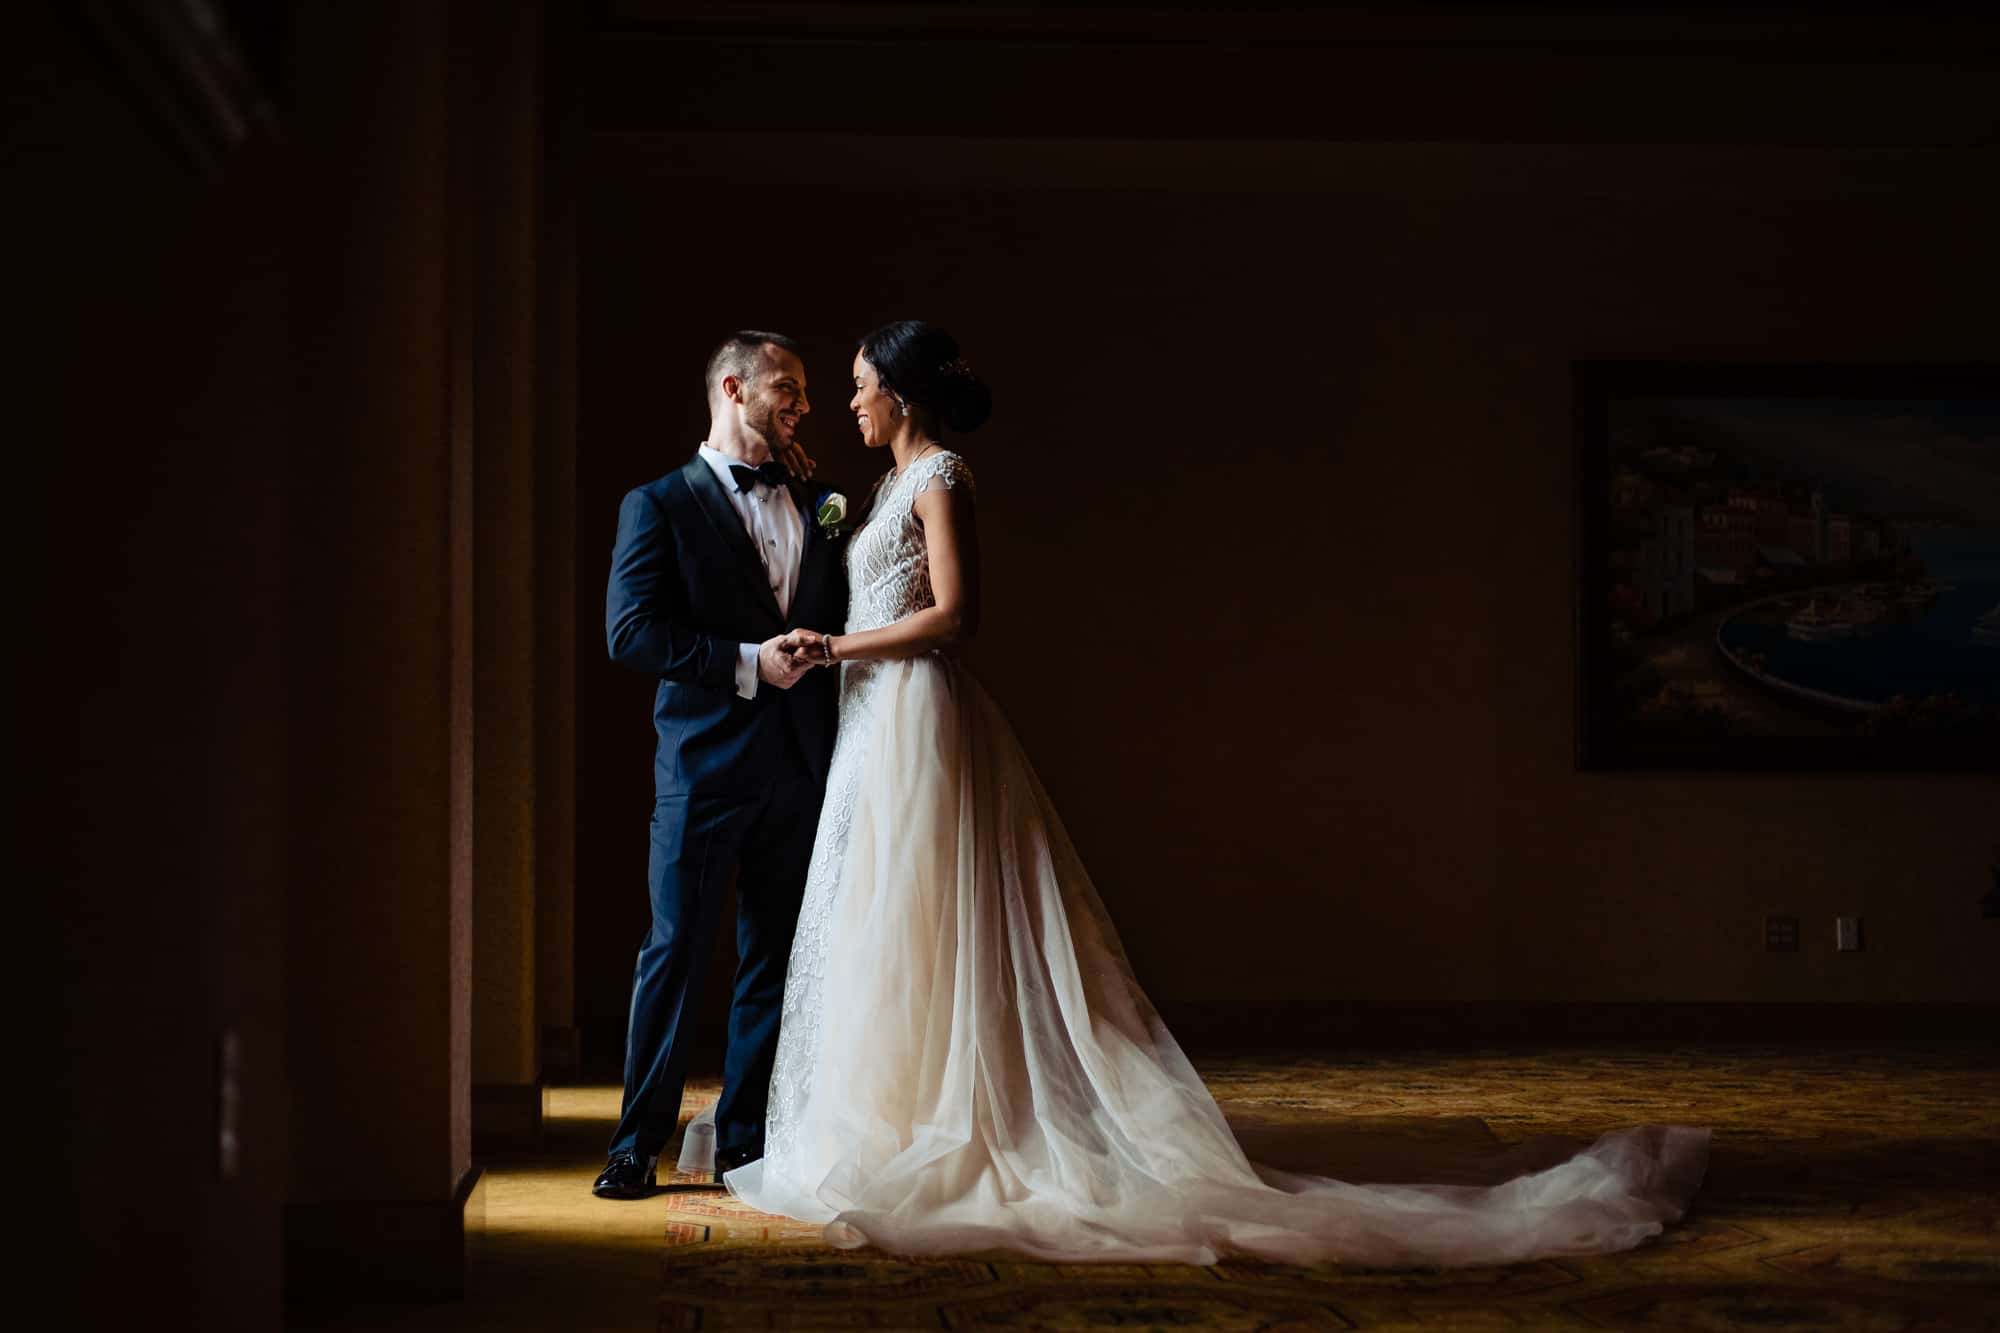 Bride and groom holding hands in beautiful window light